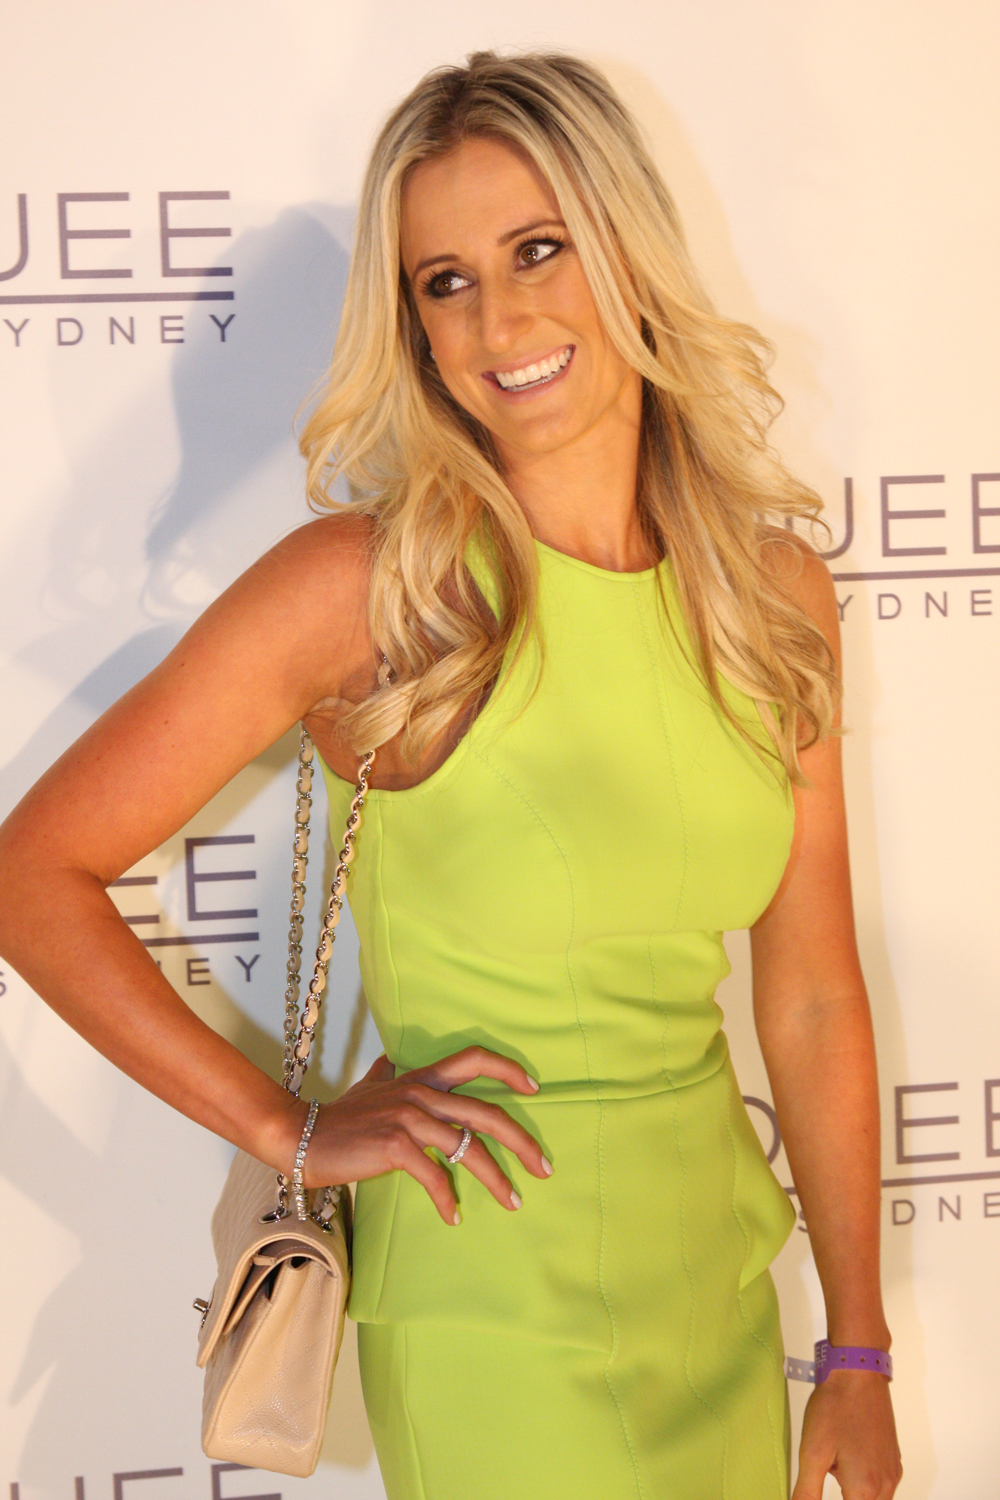 Images Roxy Jacenko nude photos 2019